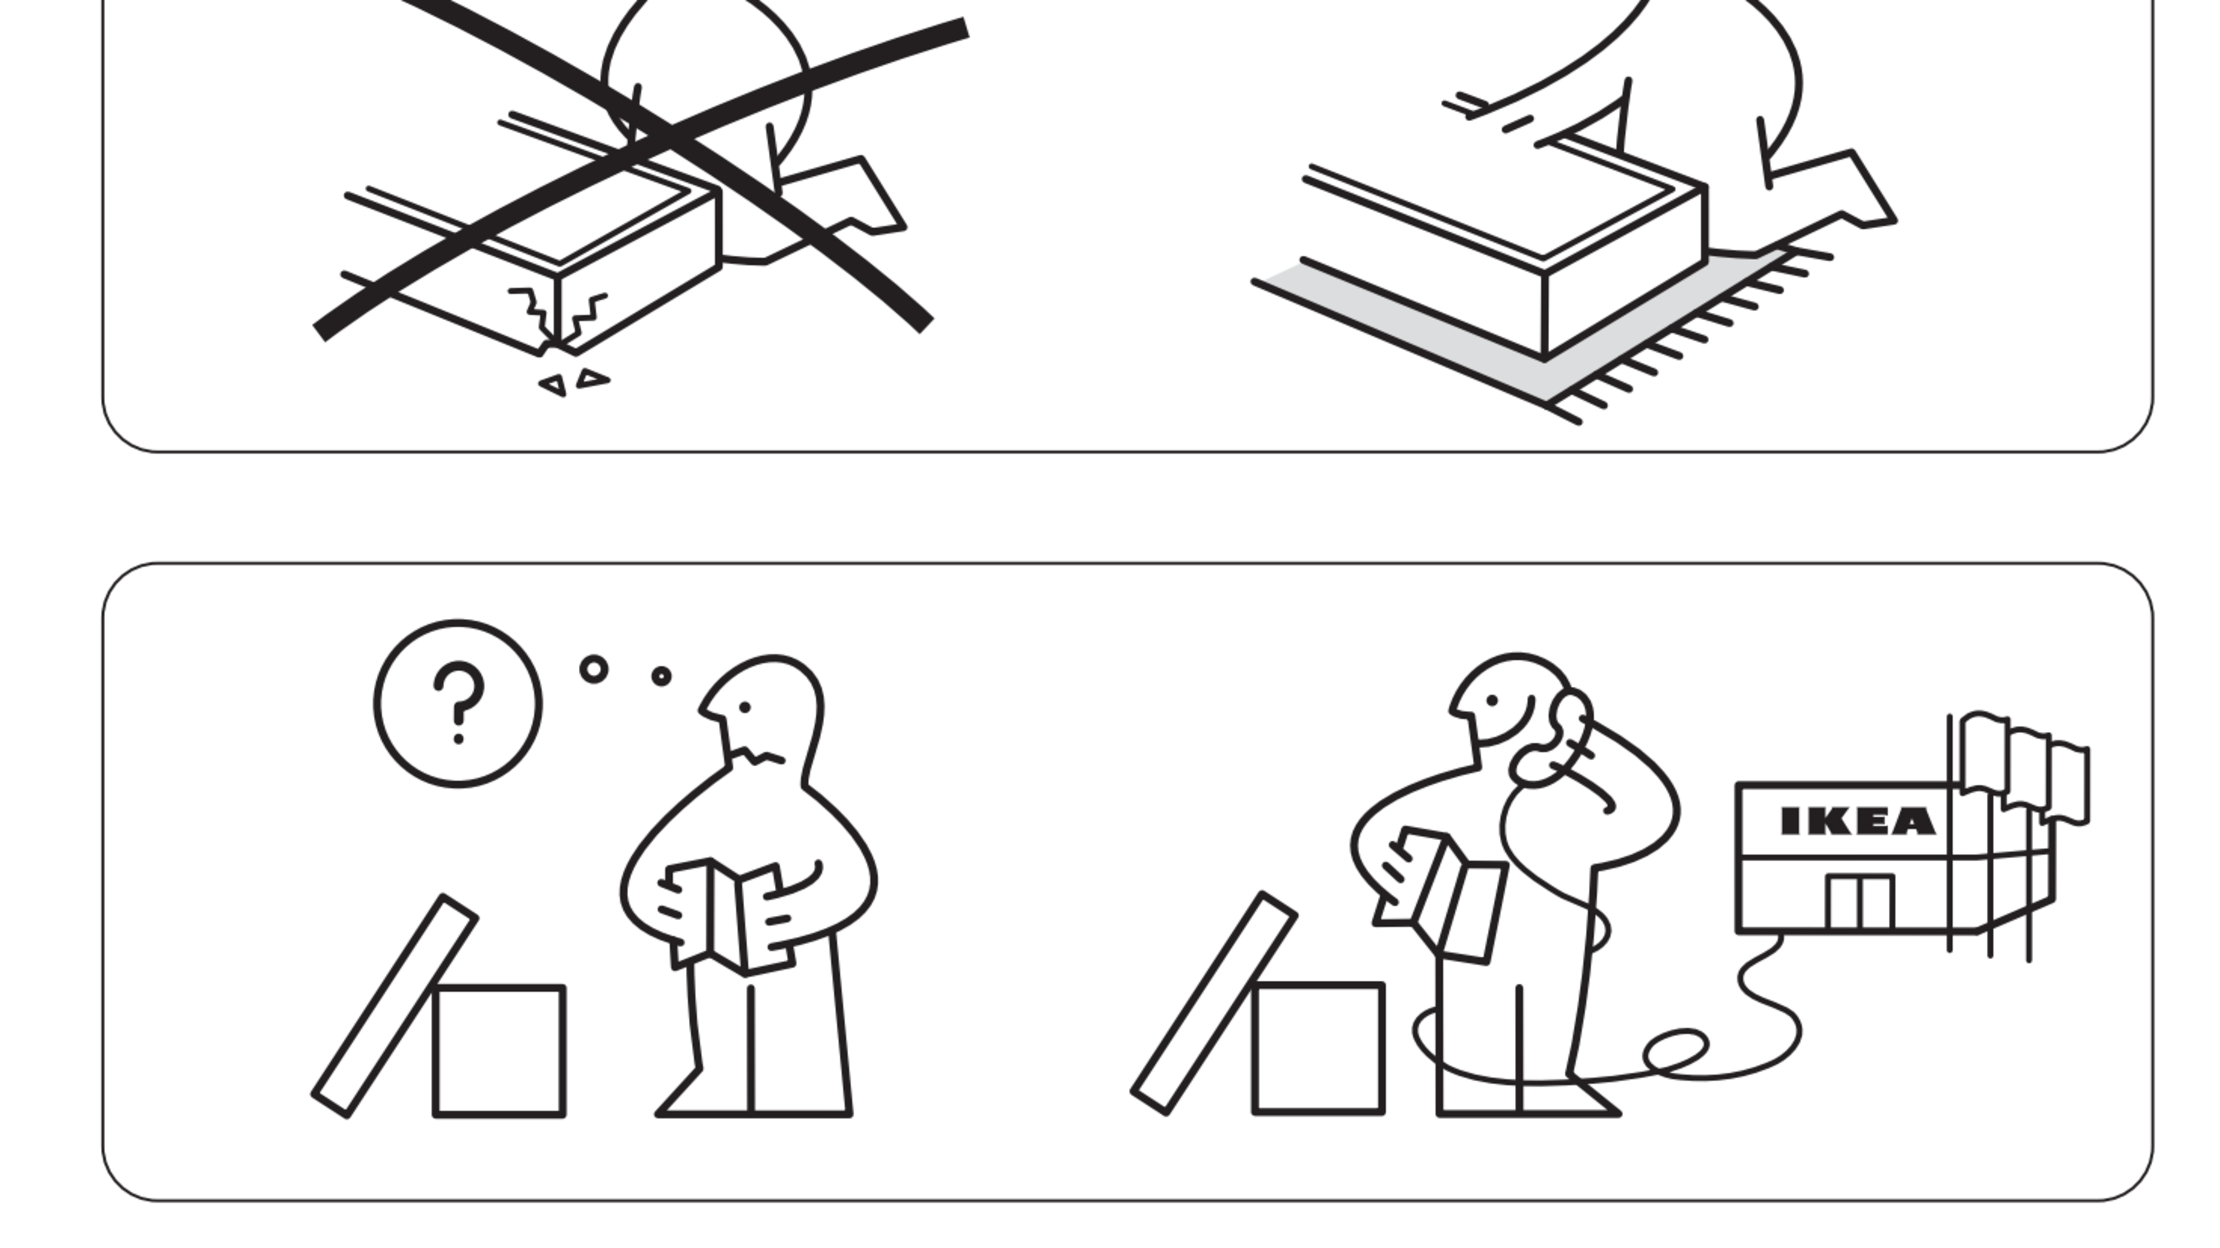 Ikea Toilet Brush Instruction Humor New Web Best